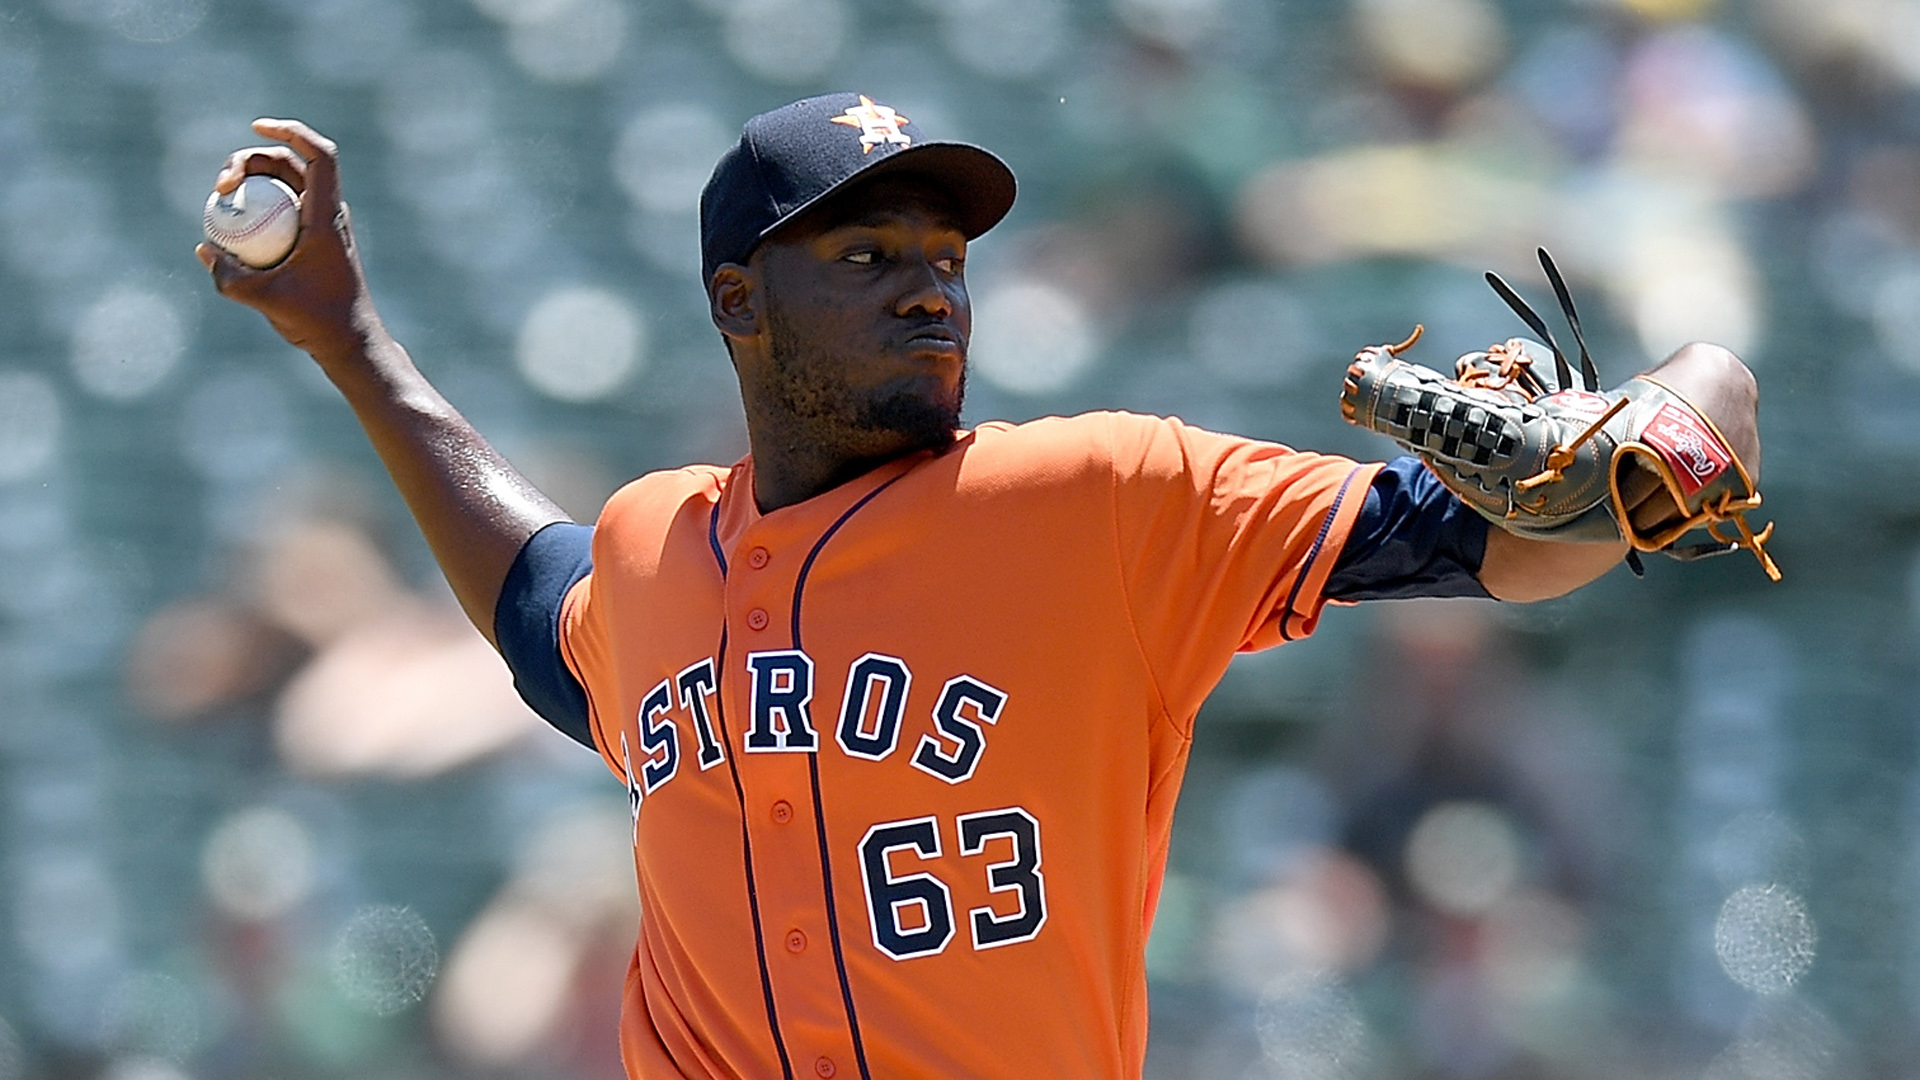 Astros pitcher Paulino suspended 80 games